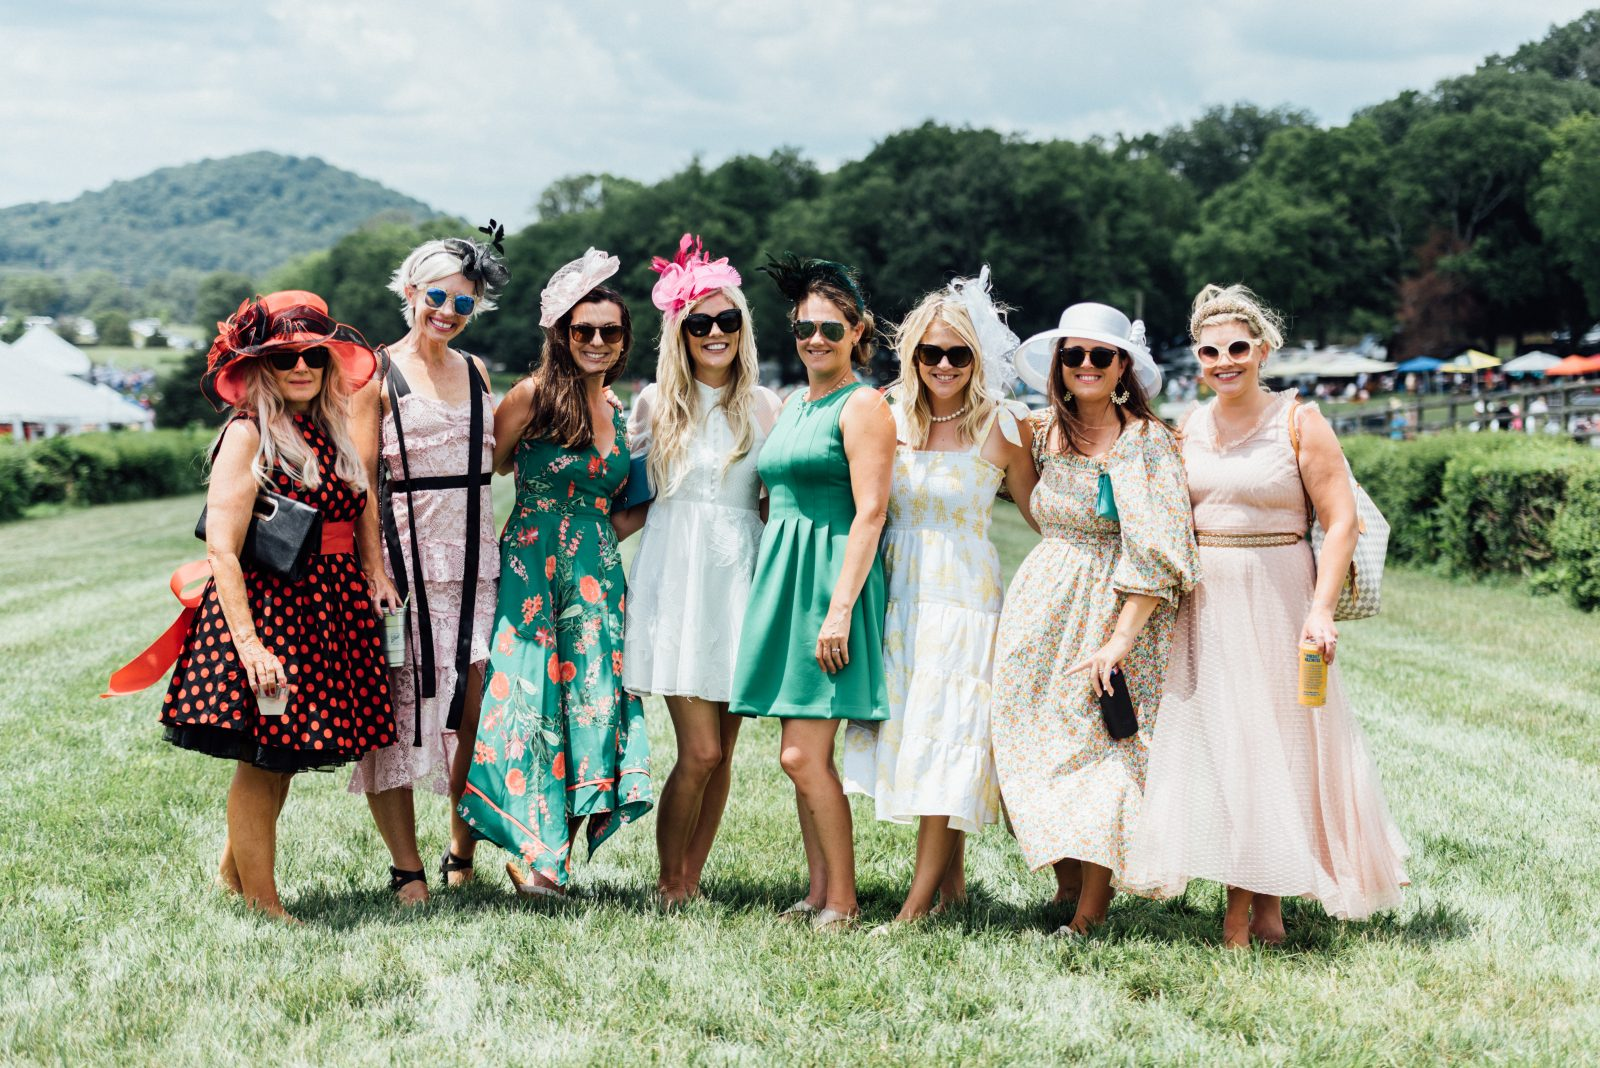 Tennessee Steeplechase 2021, featured fashions